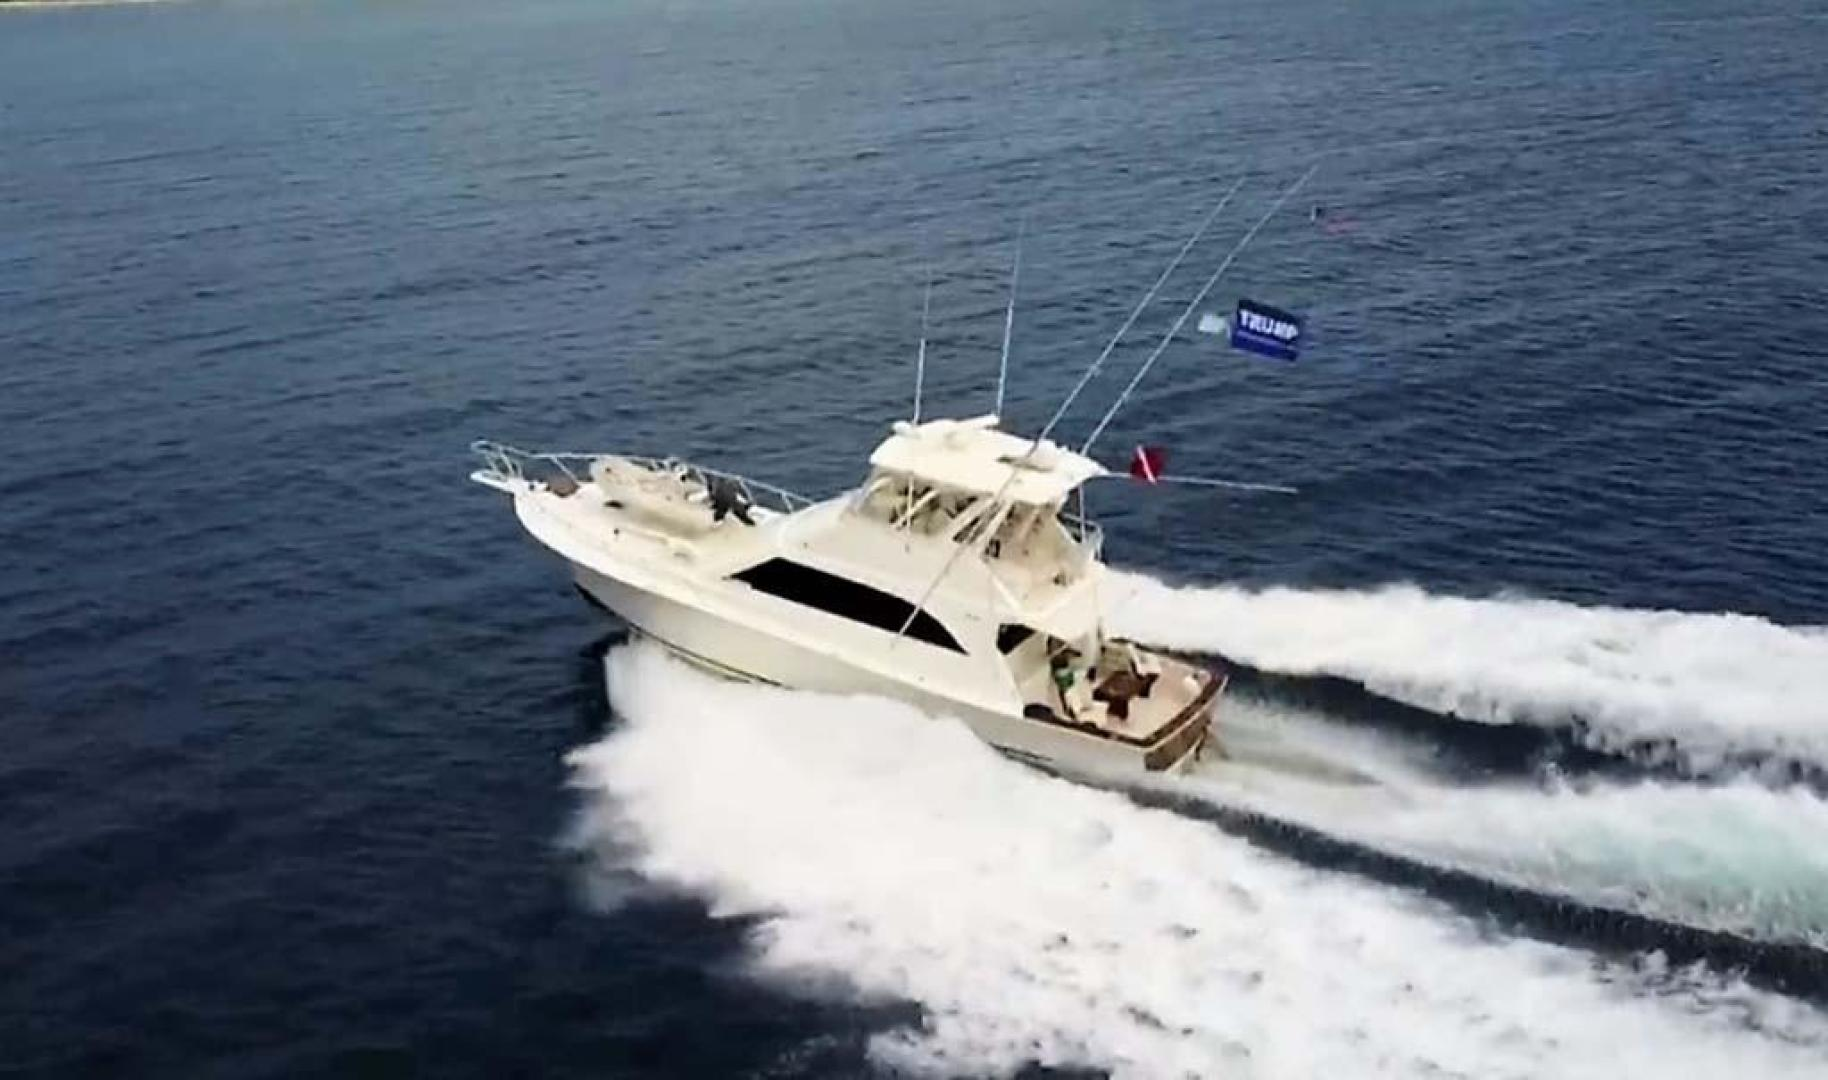 Ocean-Yachts-53-Super-Sport-1998-Made-in-the-Shade-Stuart-United-States-Portside-Running-929948